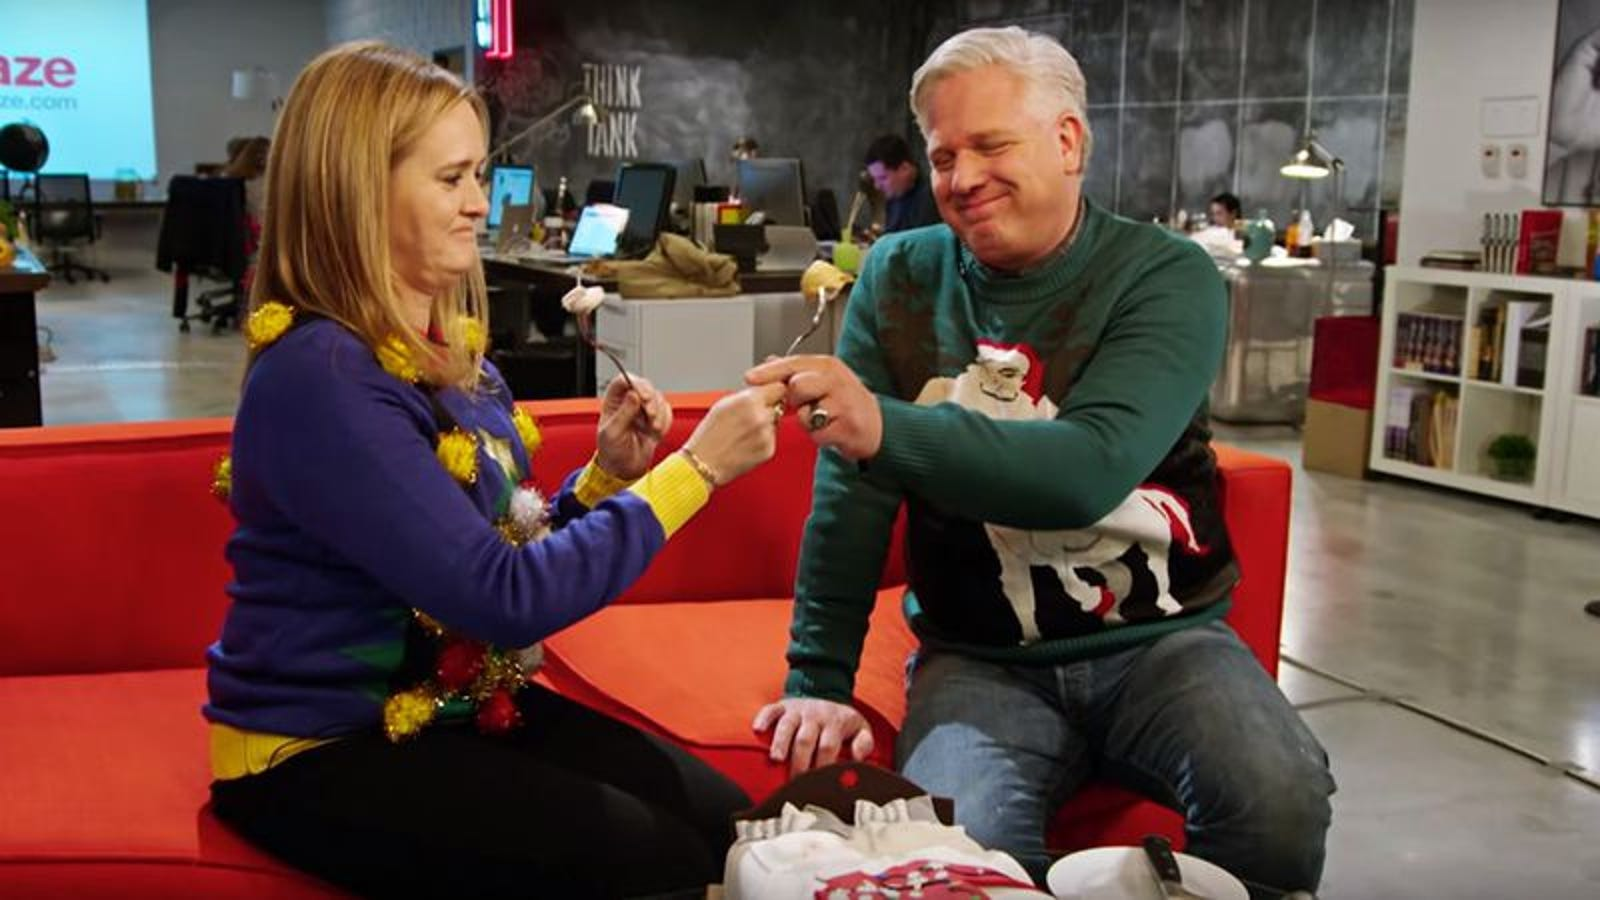 Christmas Sweater By Glenn Beck.Samantha Bee And Glenn Beck Make Peace Over Ugly Christmas